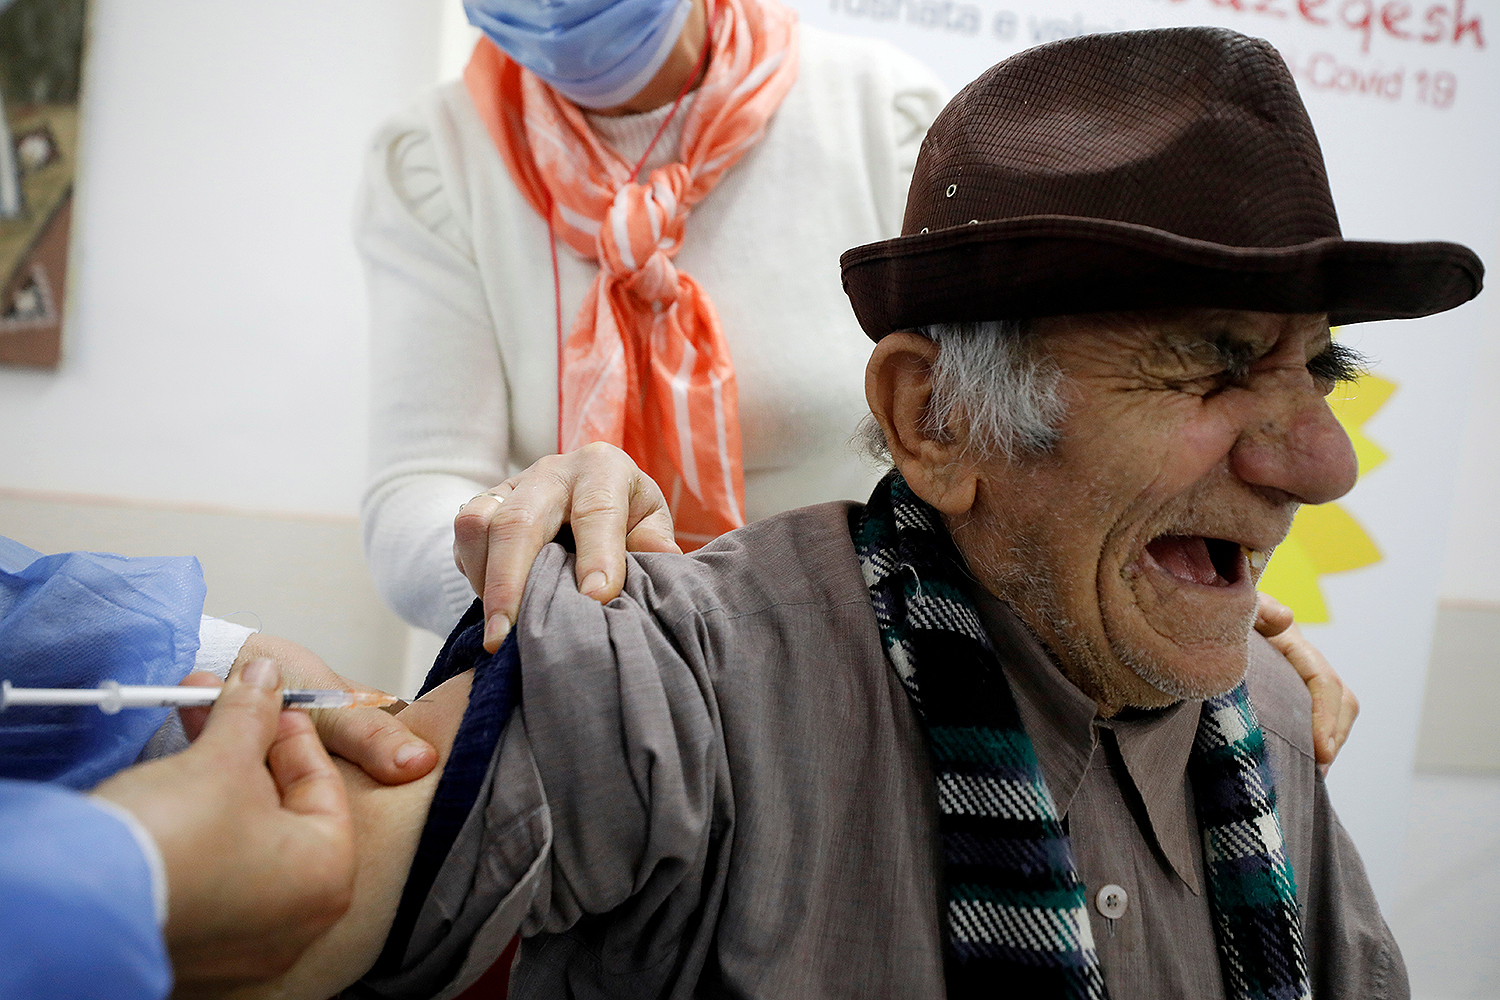 A health care worker administers a dose of the Pfizer-BioNTech COVID-19 vaccine to a man in Fier, Albania, on Feb. 19. Florion Goga/REUTERS